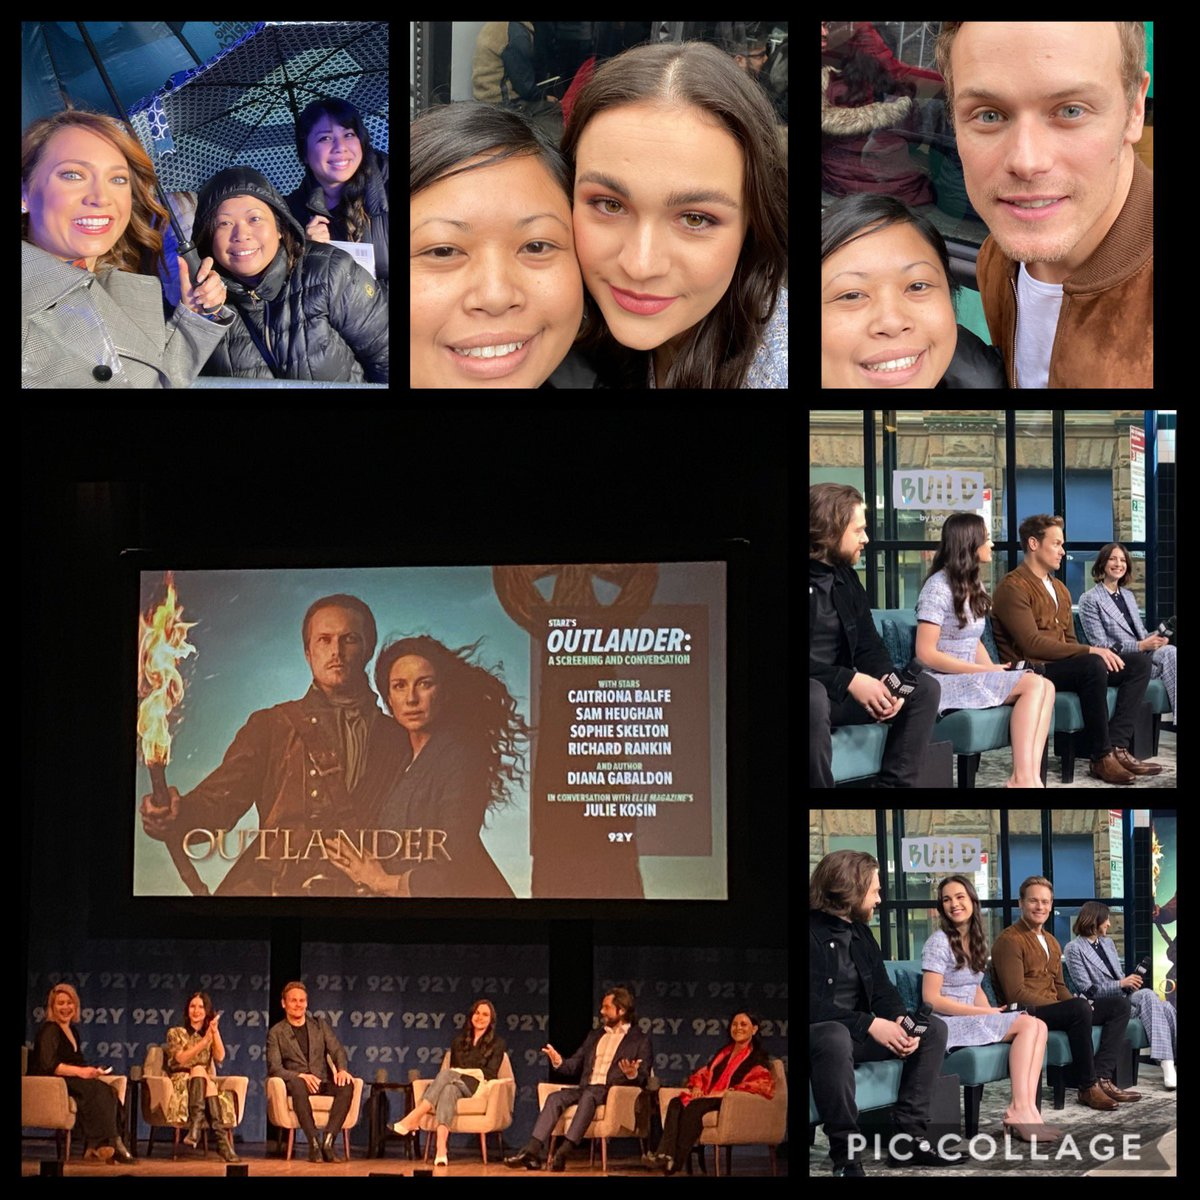 Had the most amazing week. 2020 is off to a great start. It was #Outlander week for me! Was lucky enough to see them in NYC and LA. #OutlanderS5 #OutlanderSeason5Premiere @Outlander_STARZ @Writer_DG @SkeltonSophie @caitrionambalfe @SamHeughan @RikRankin Back to work tomorrow...😭